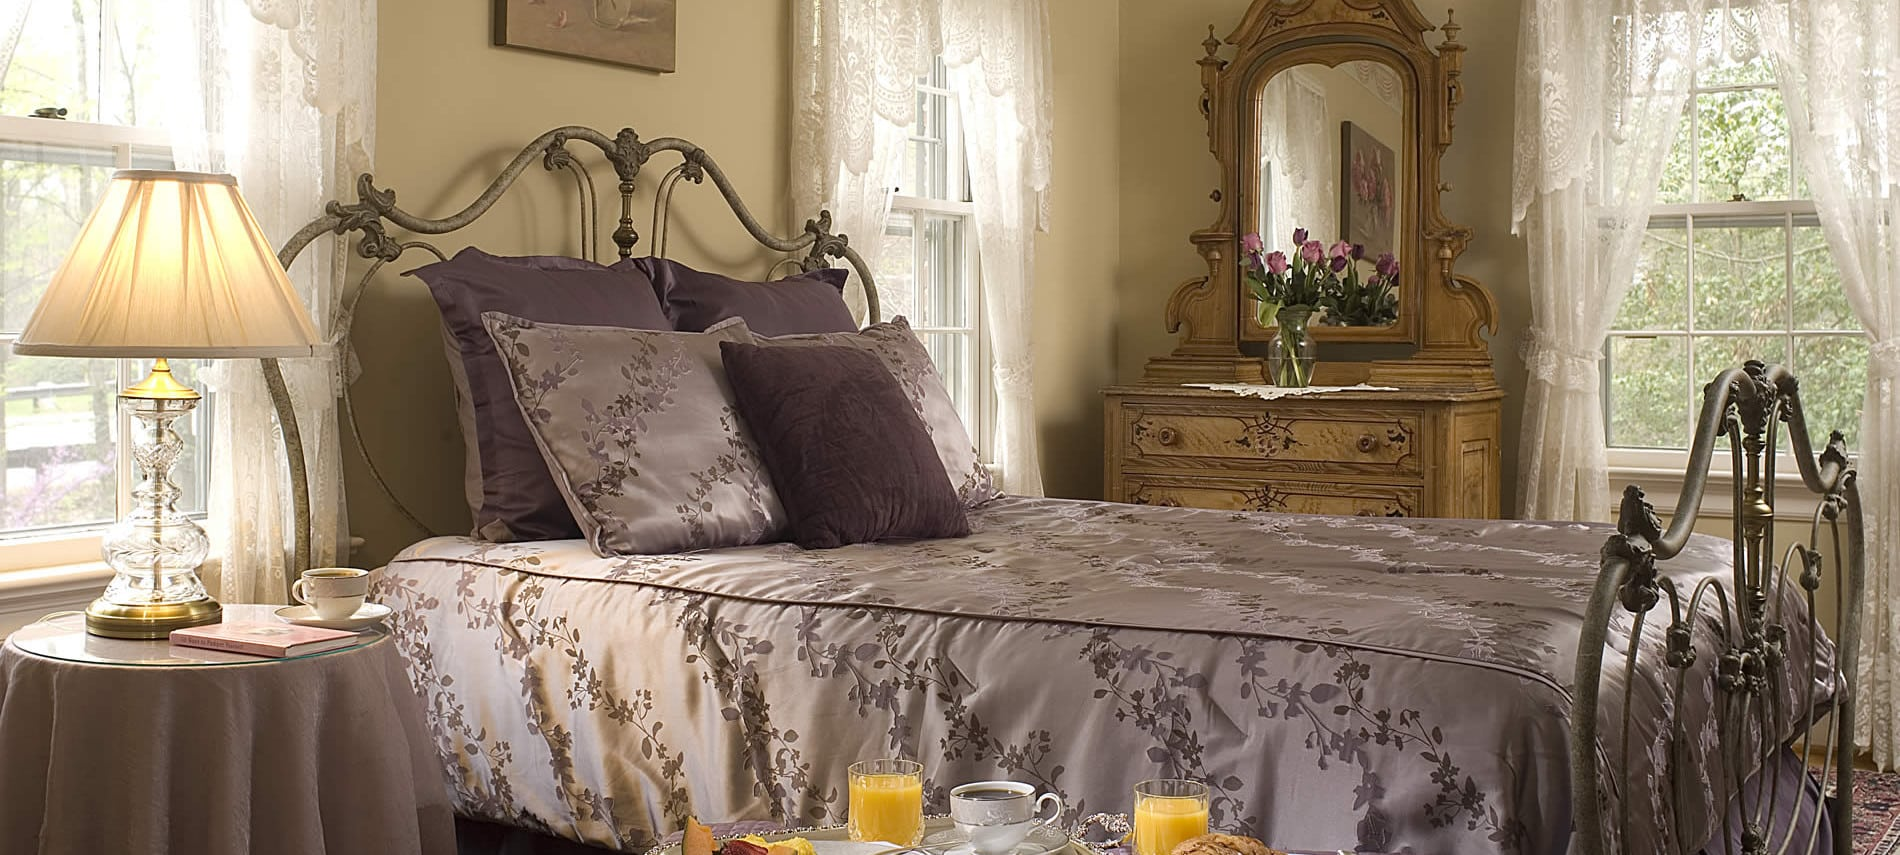 breakfast in room on tray next to queen sized bed with purple comforter and pillow shams light on side table illuminated